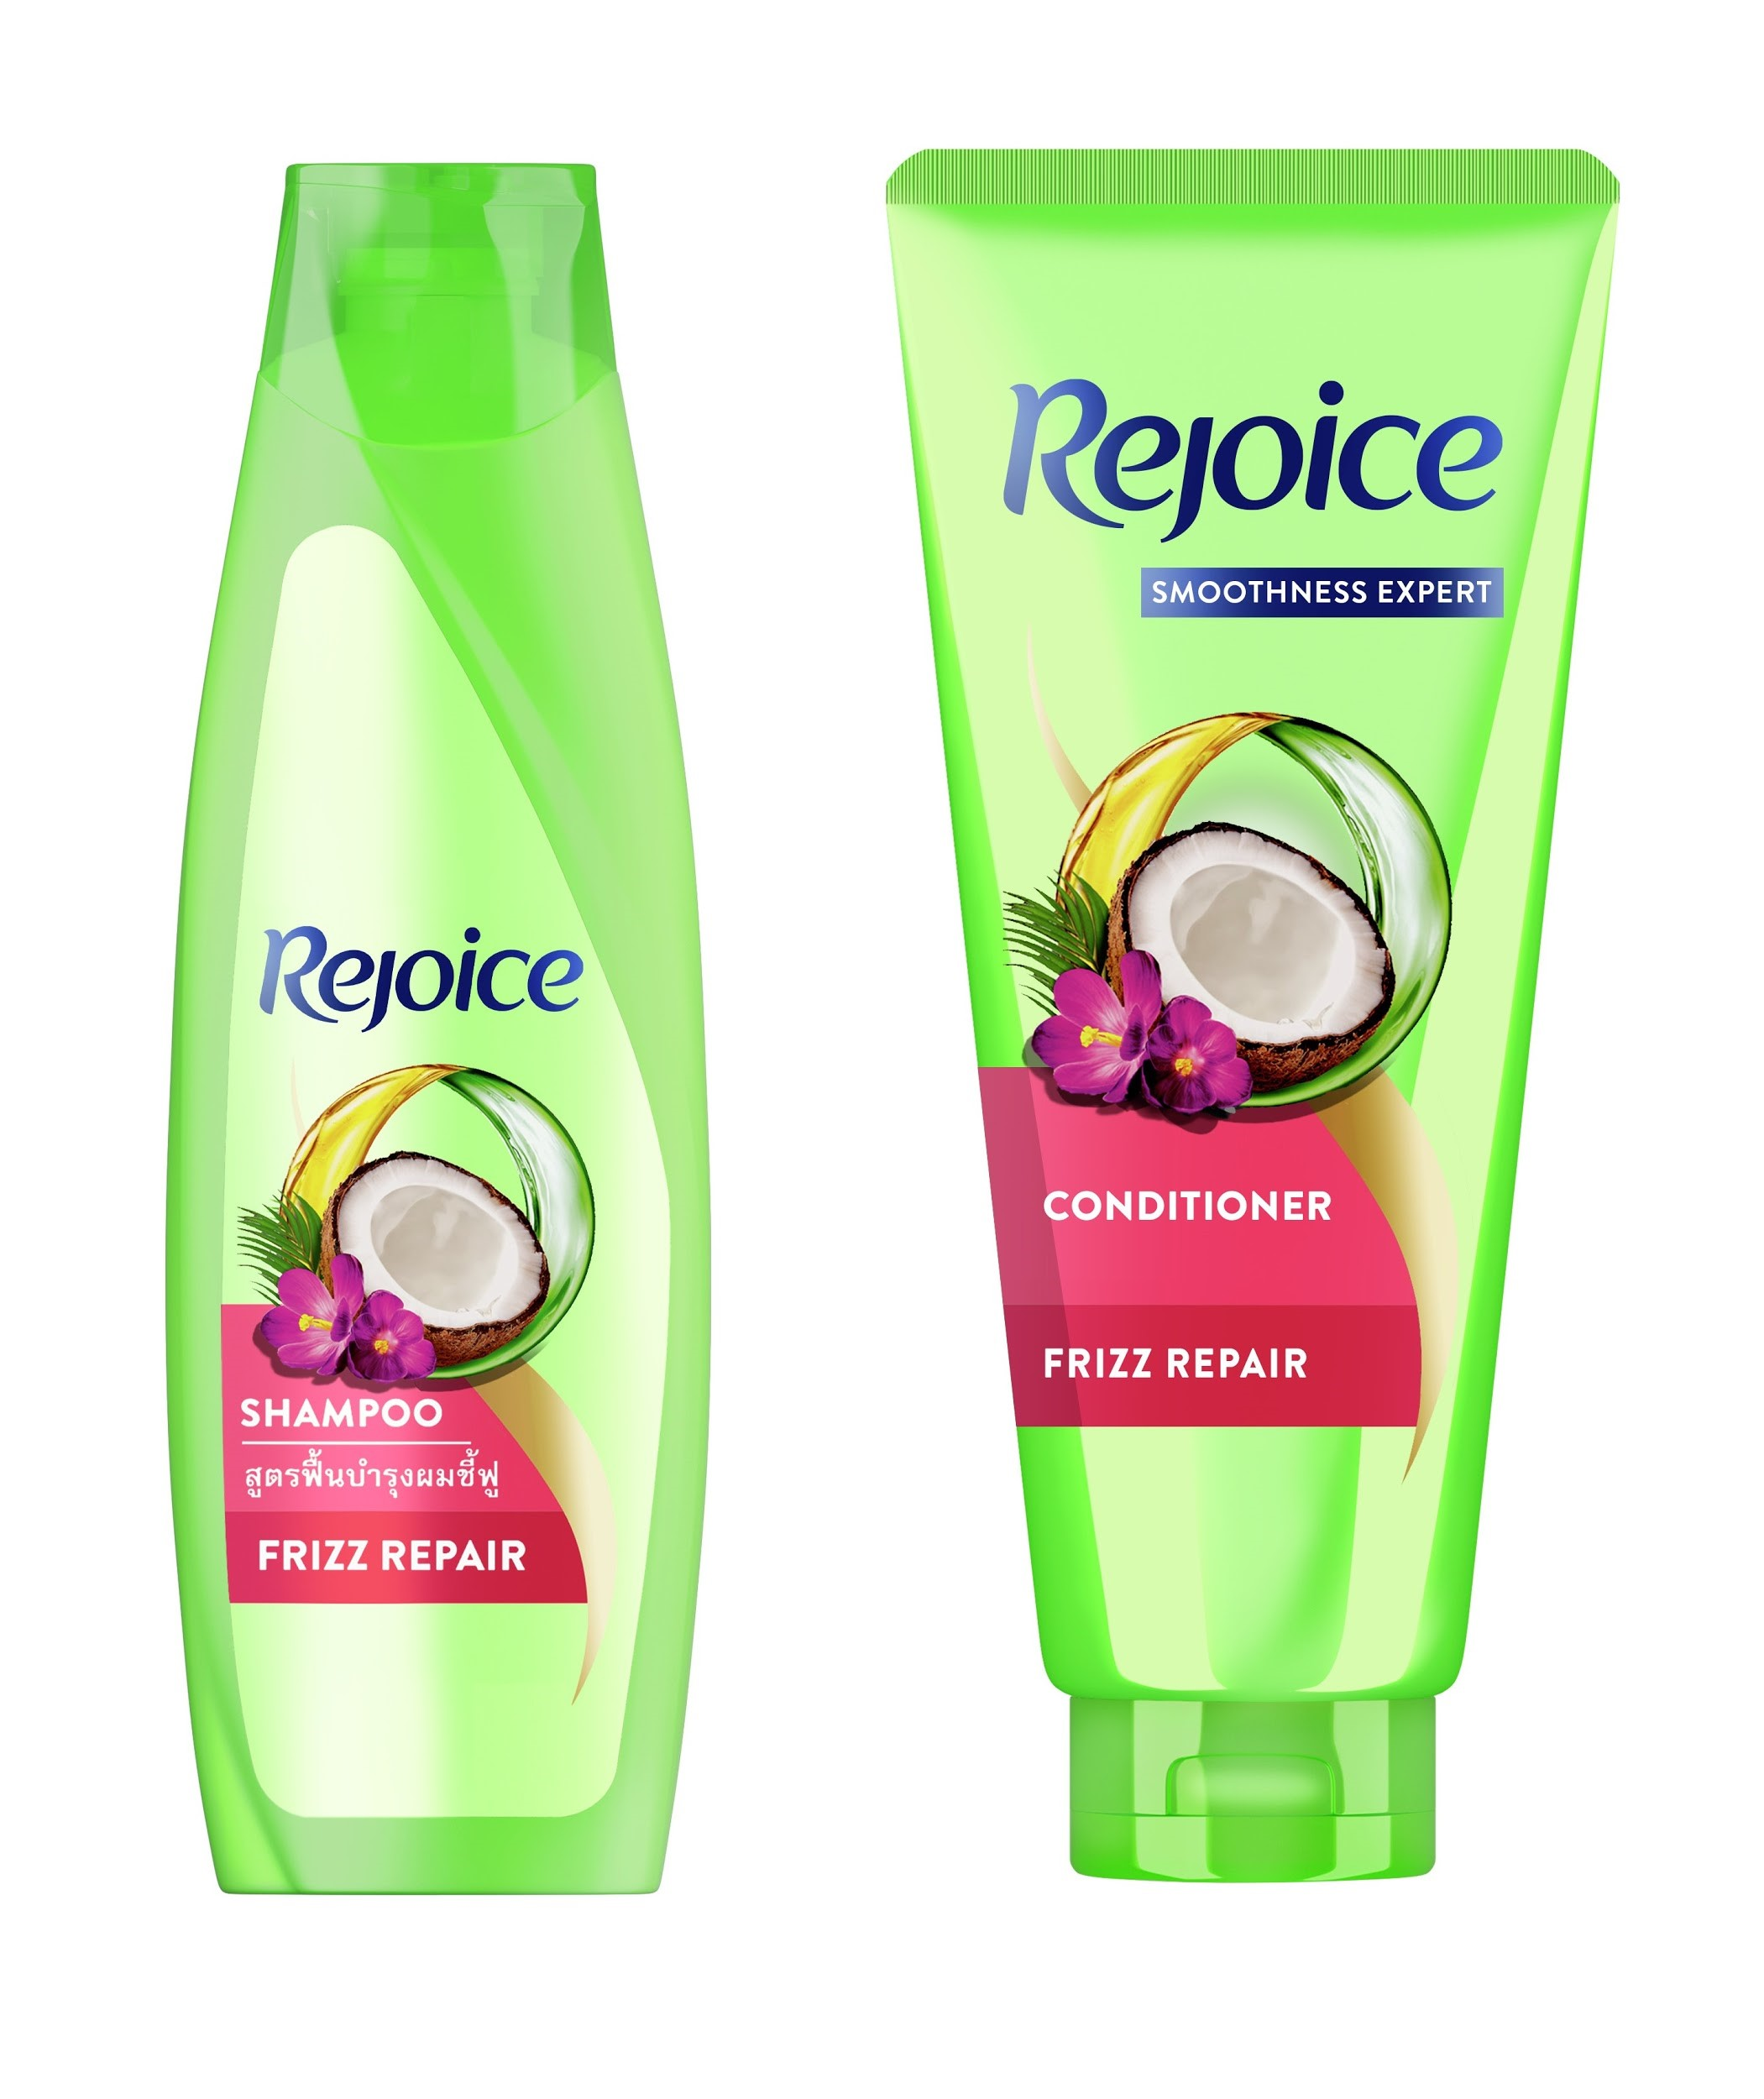 Rejoice Frizz Repair shampoo and conditioner